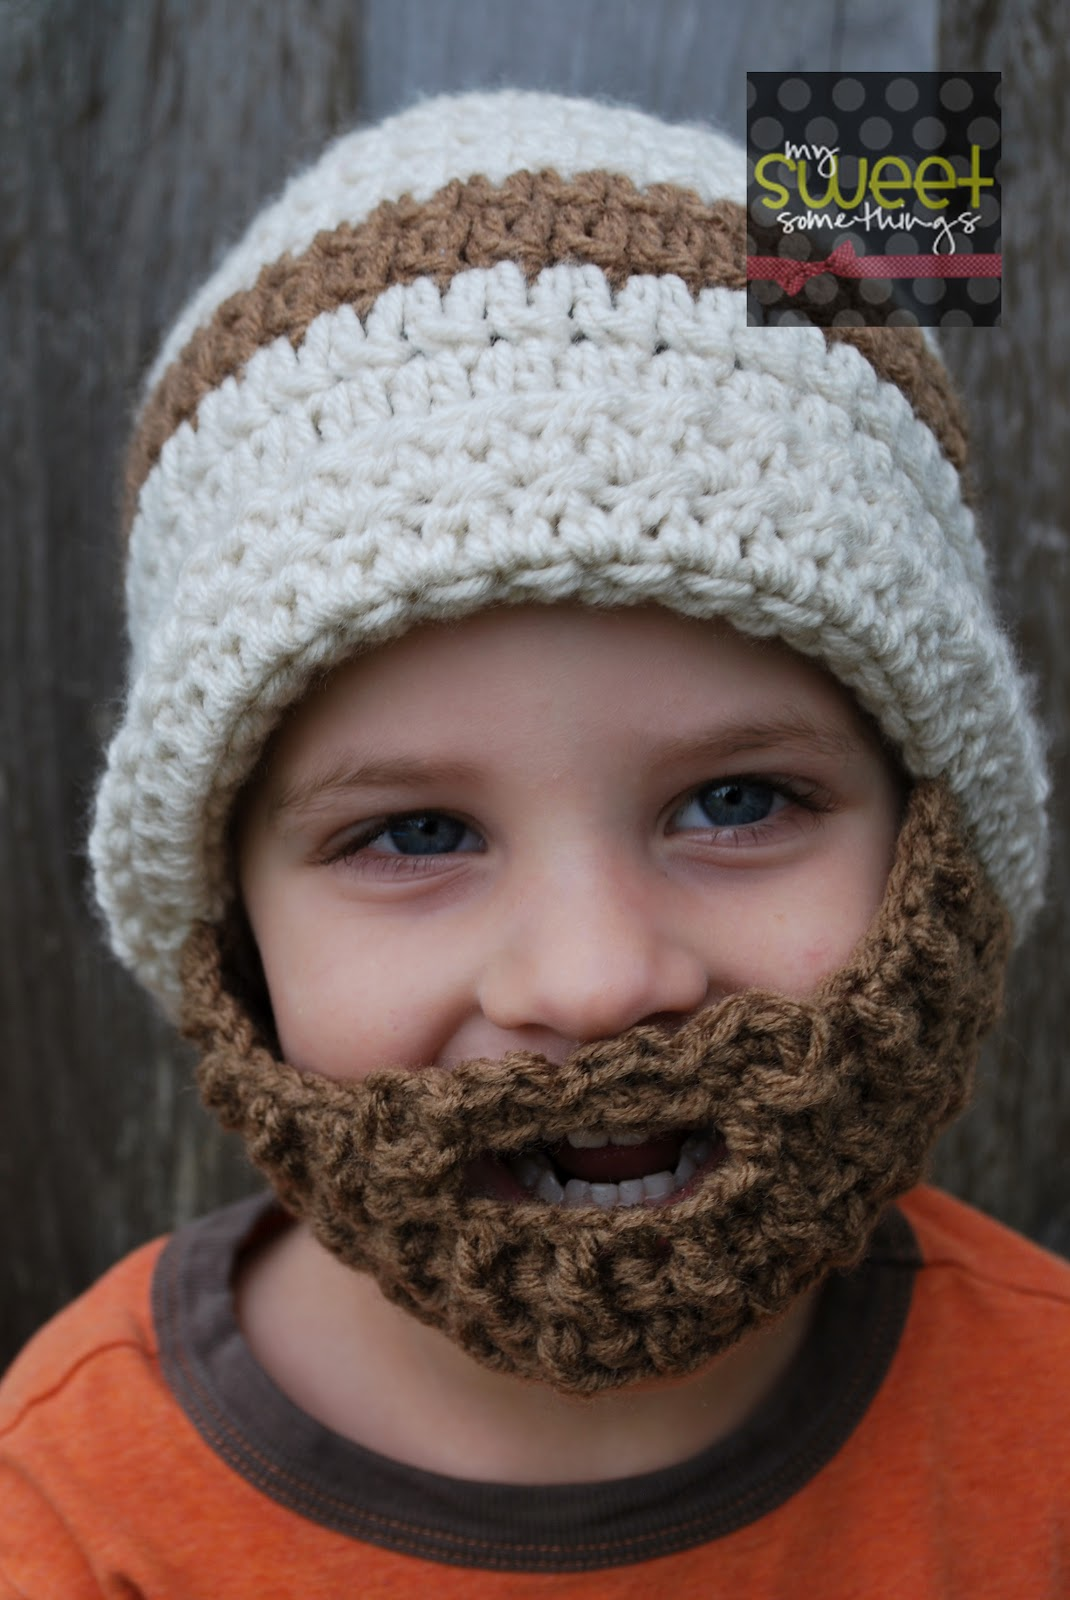 Crochet Patterns Free Childrens Hats : My Sweet Somethings: Bearded Hat for Kids!